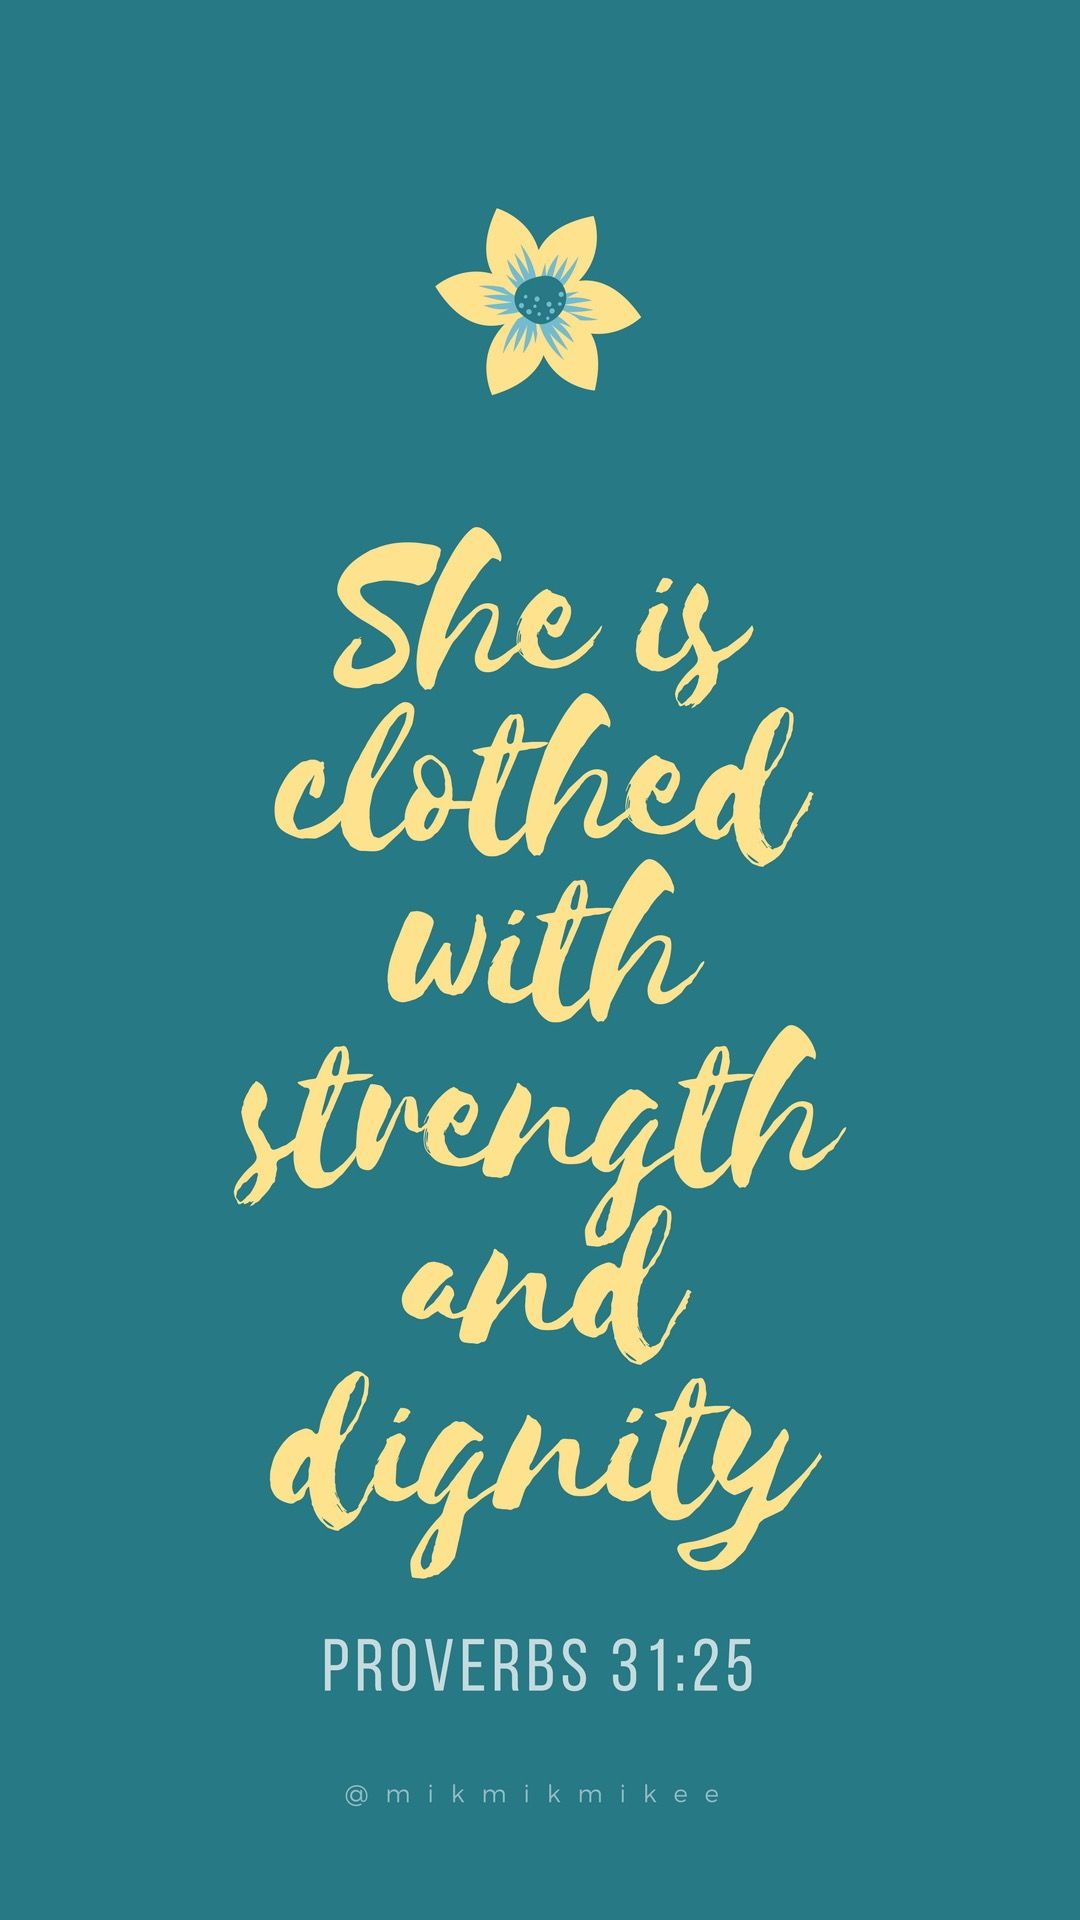 She is clothed with strength and dignity Proverbs 3125 Teal 1080x1920